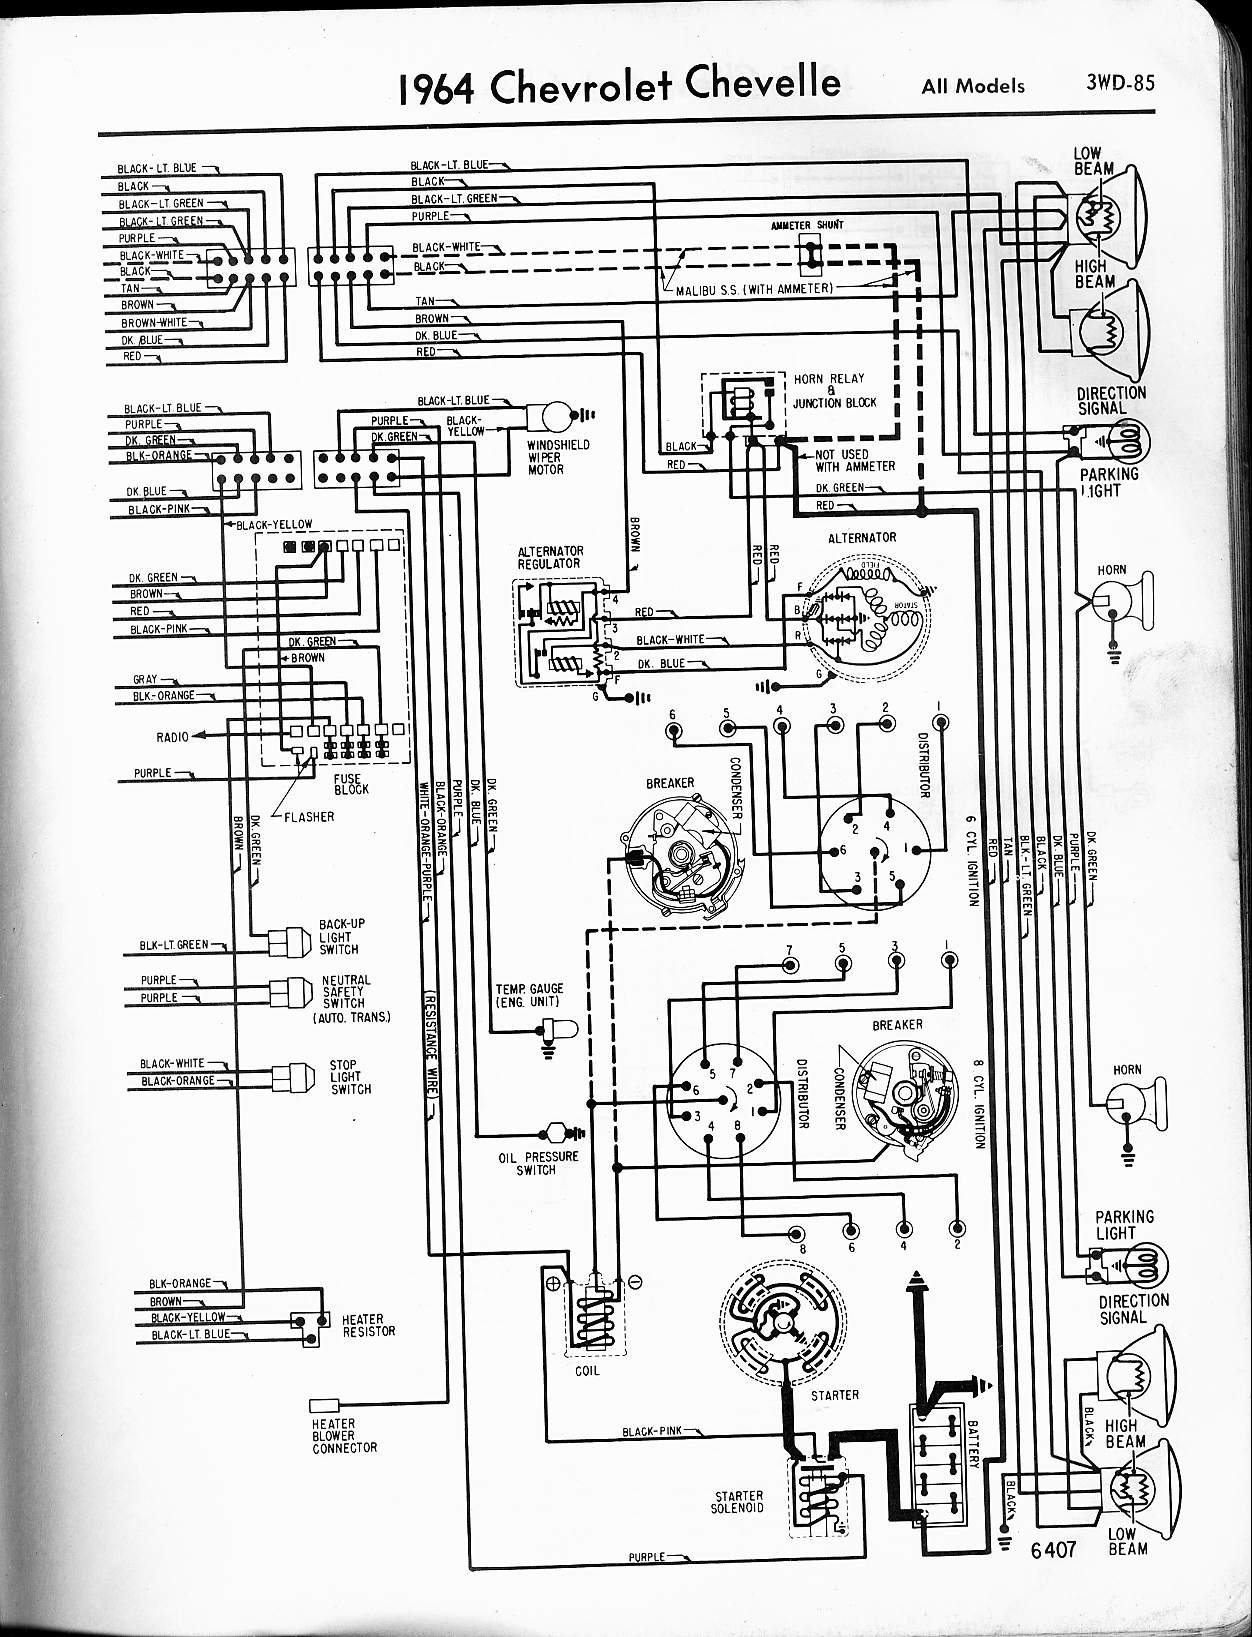 MWireChev64_3WD 085 chevy diagrams 1966 chevy impala wiring diagram at reclaimingppi.co